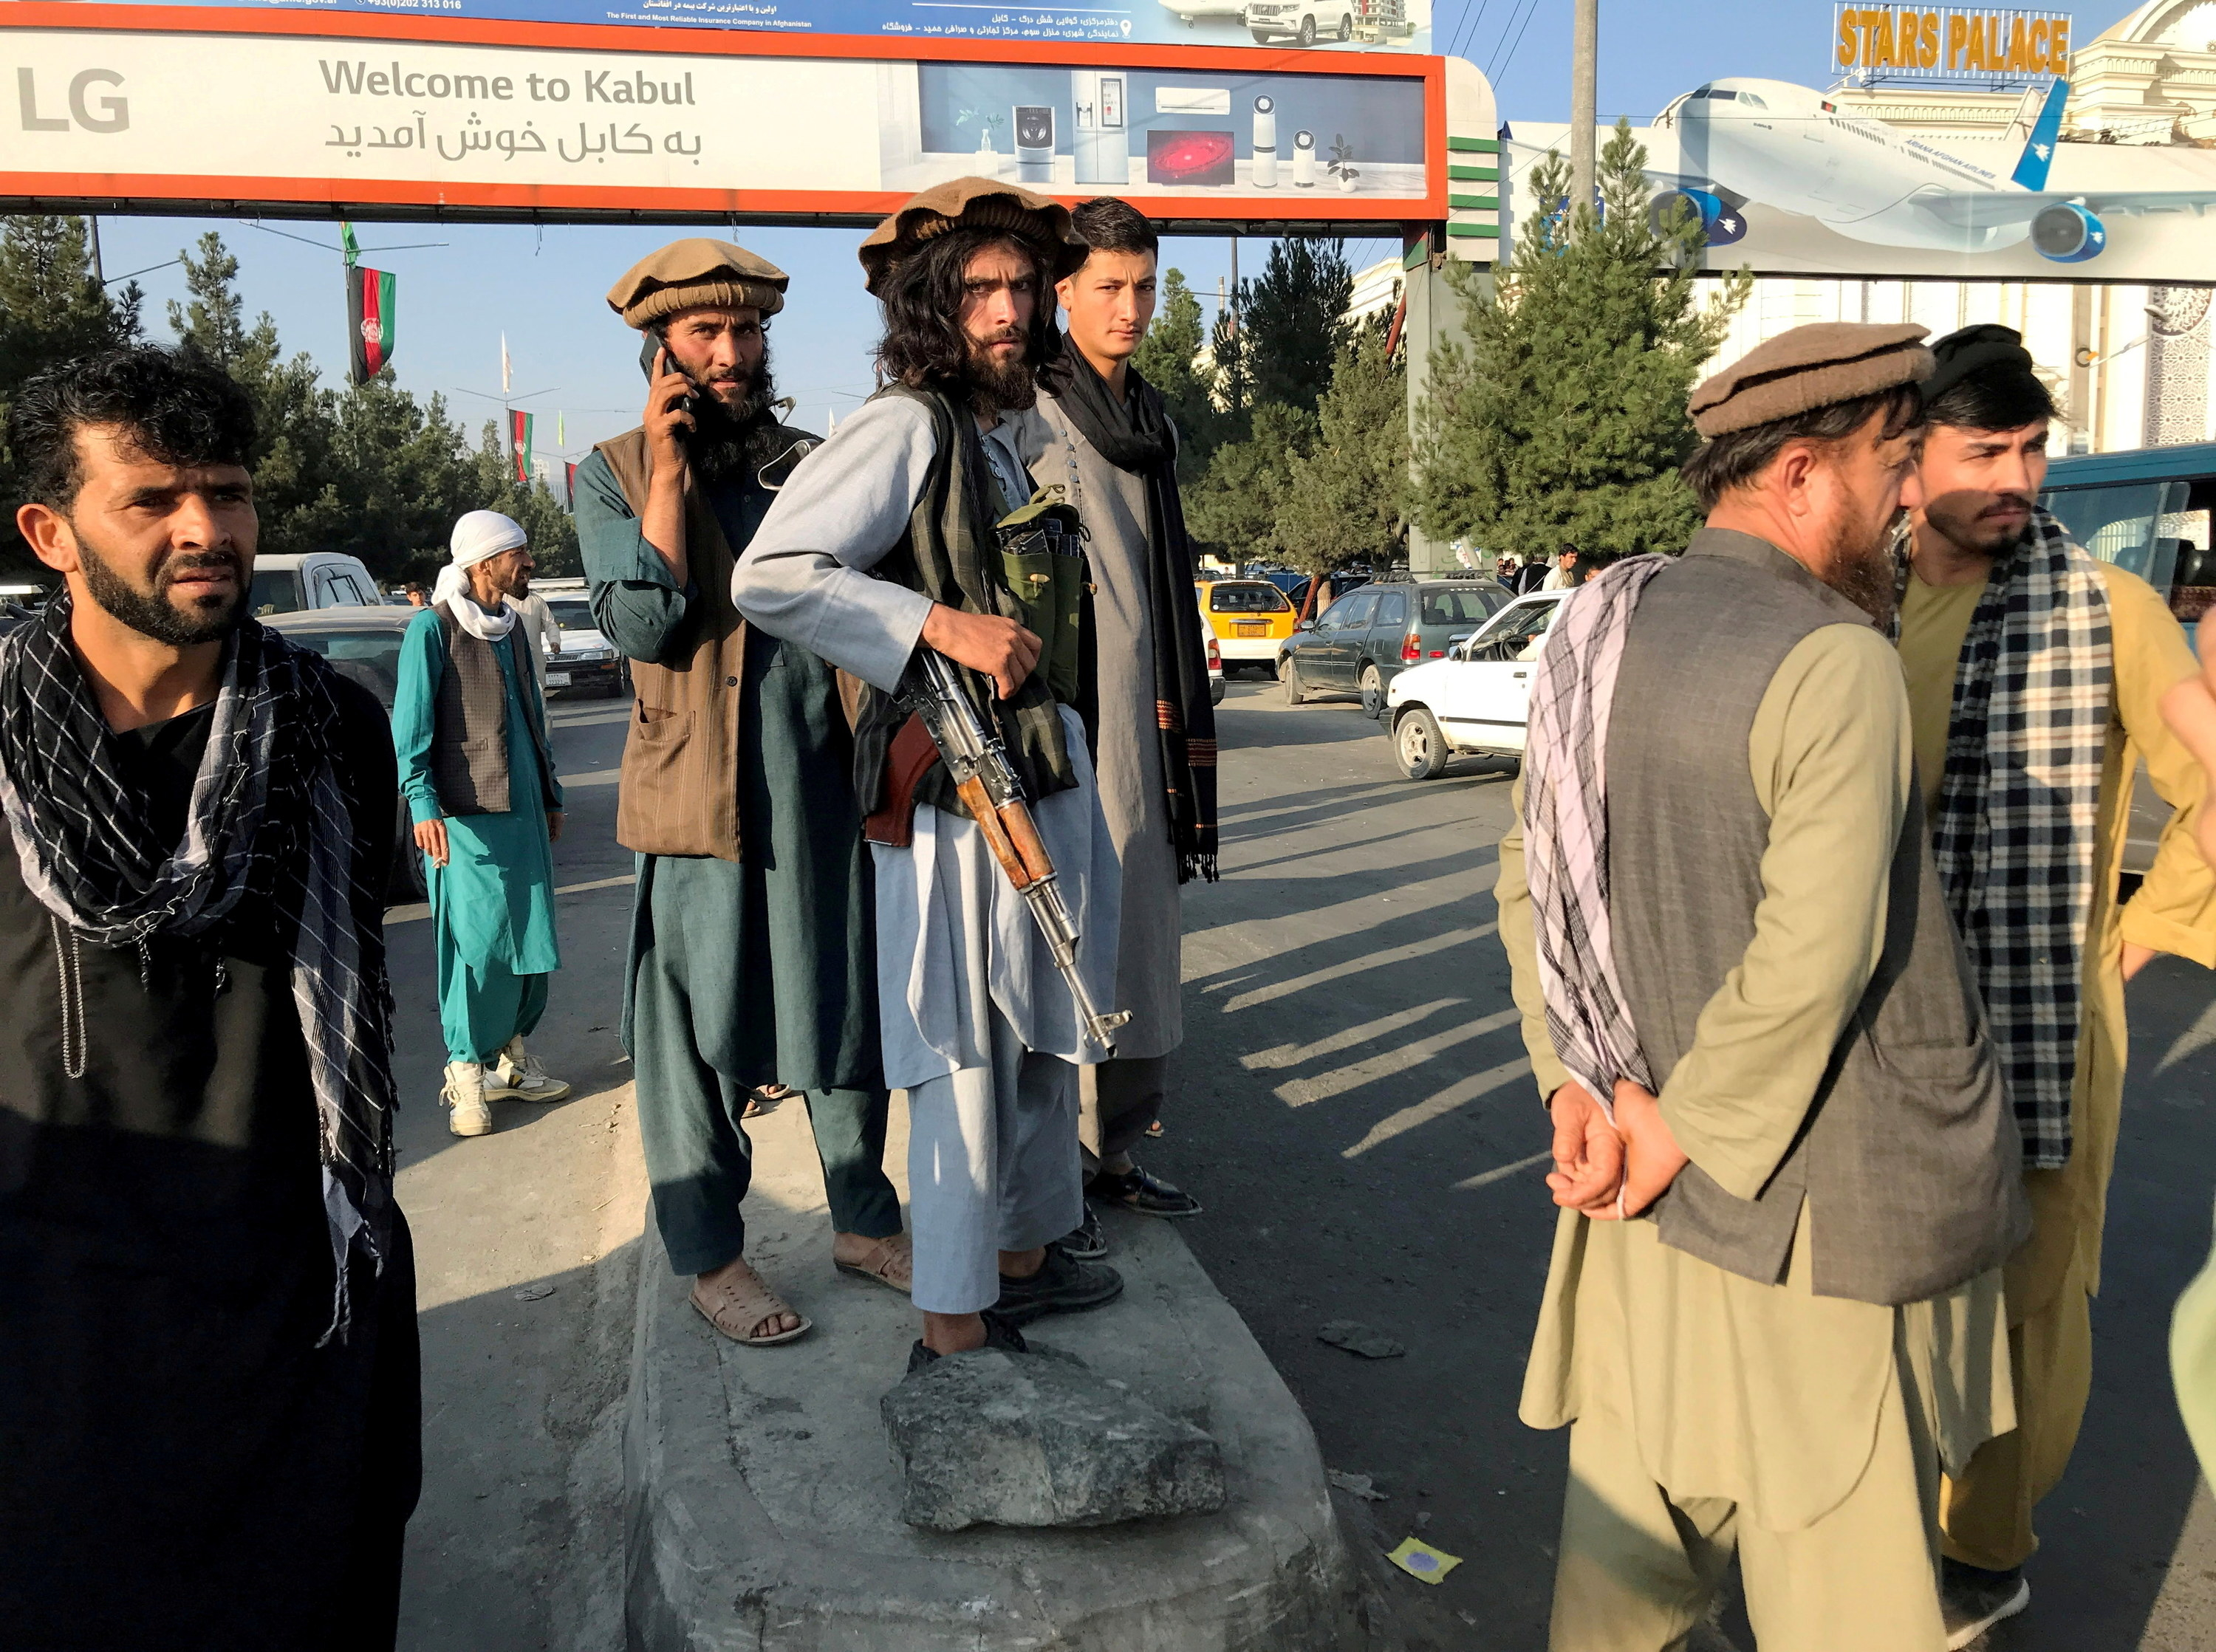 Taliban members with guns stand under a sign saying welcome to Kabul